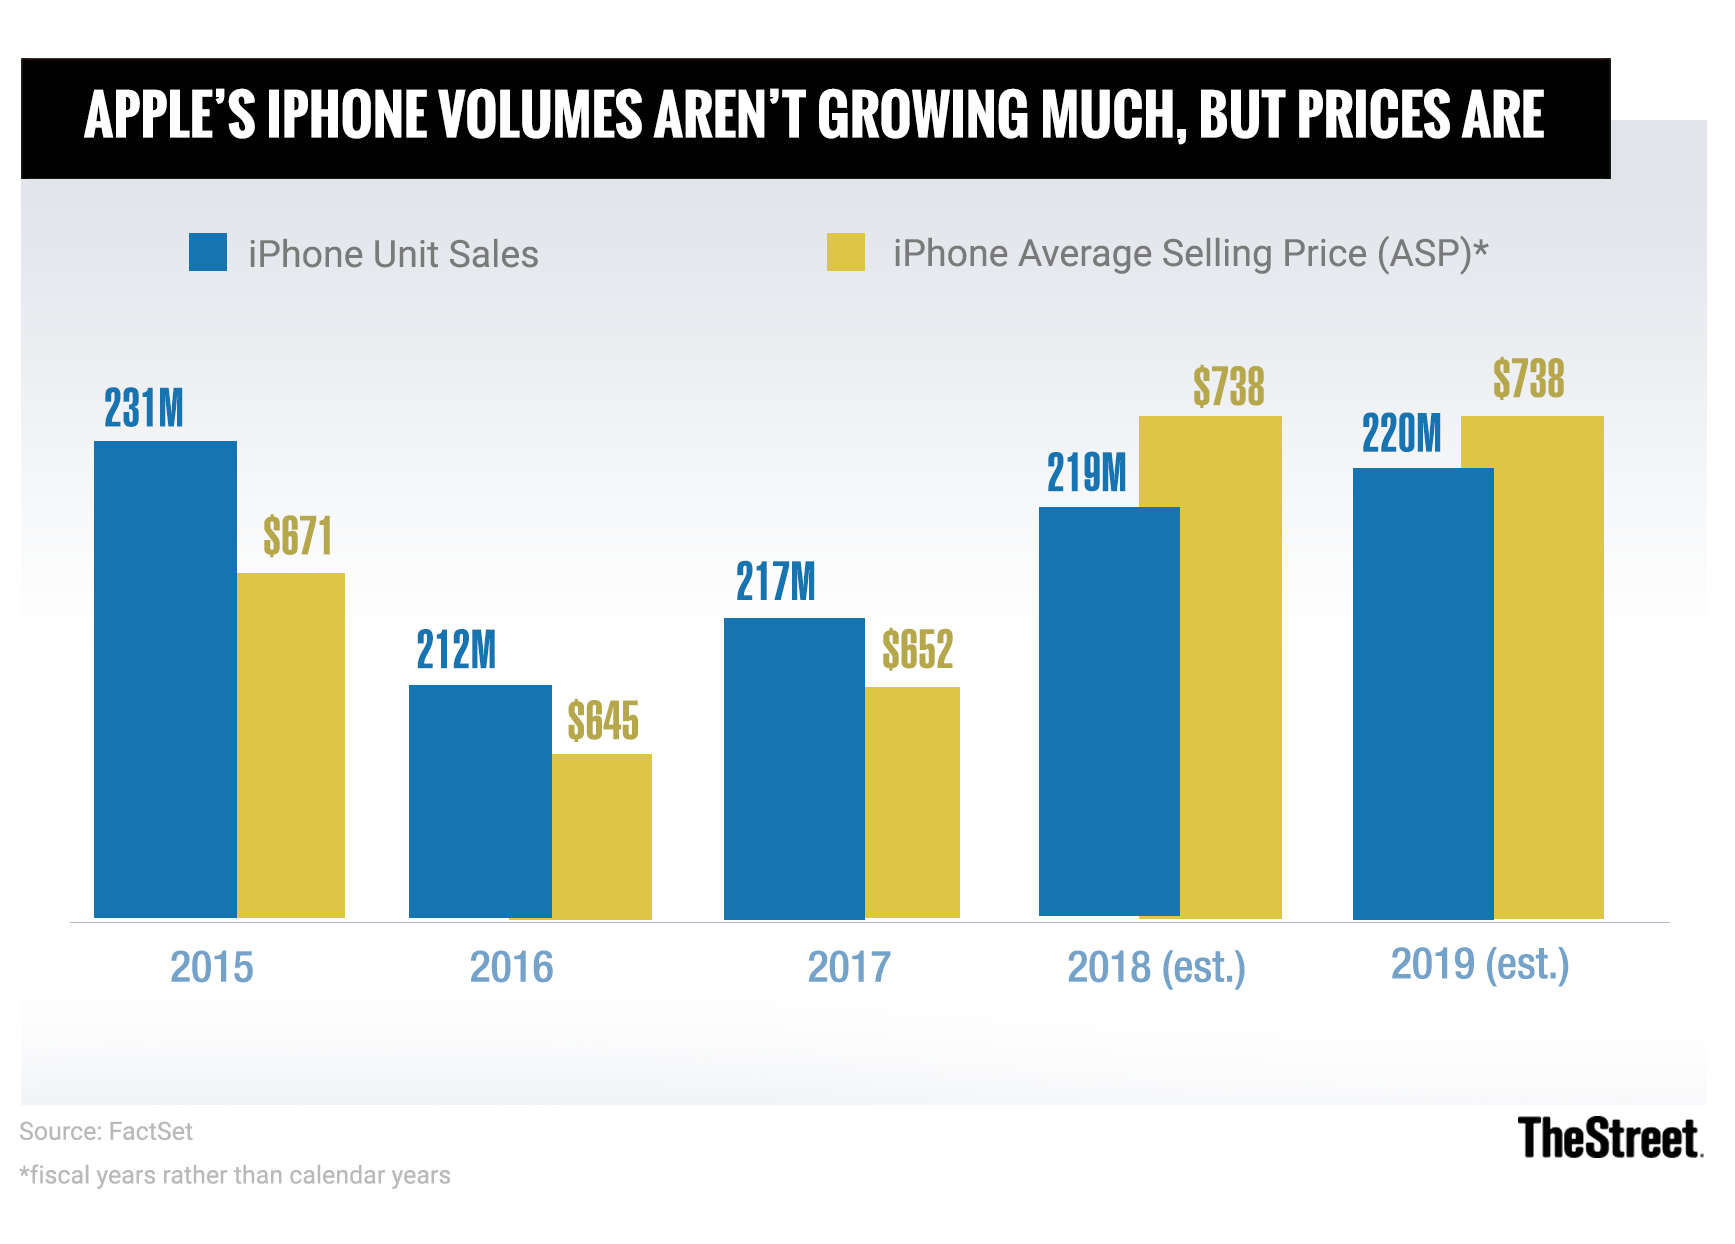 Why Bad Iphone News Isnt Hurting Apple And Broadcoms Stocks Like